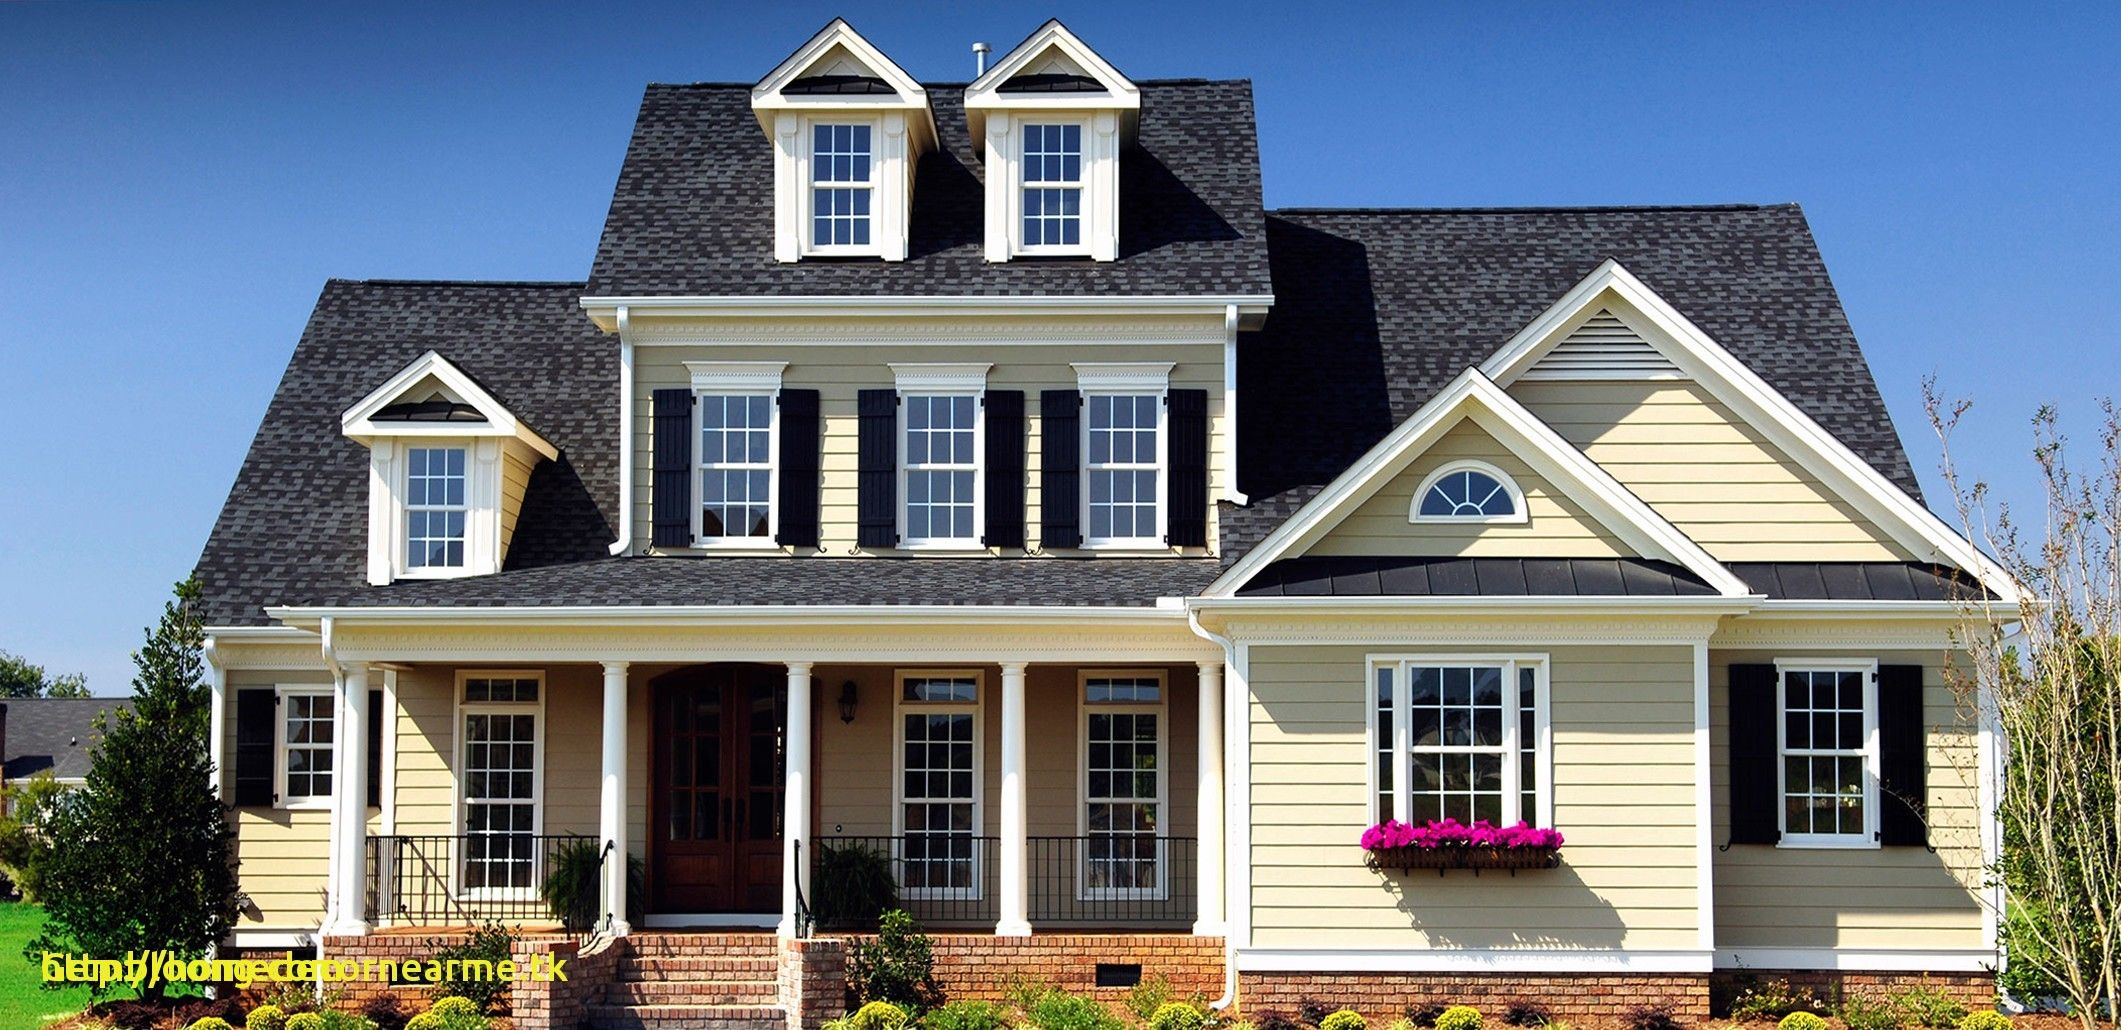 Best Of Best Site To Find Homes For Sale Welcome To Be Able To My